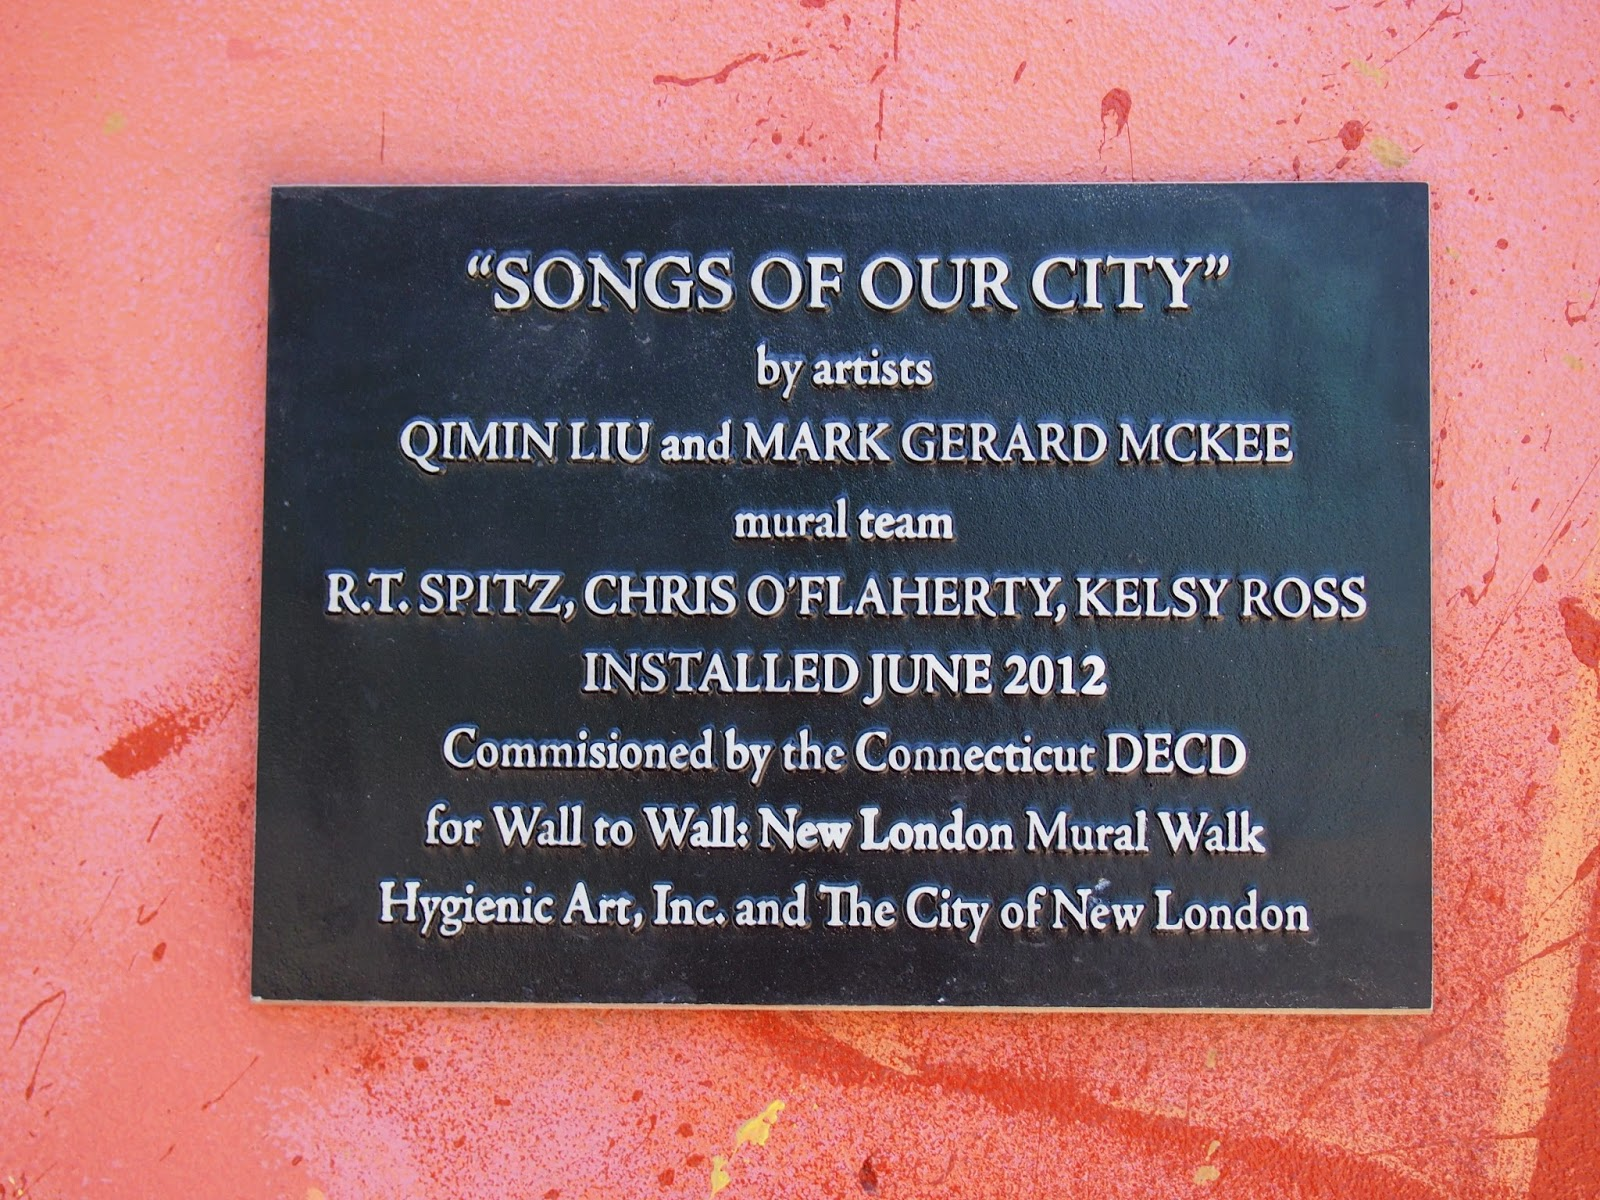 Songs of our city plaque